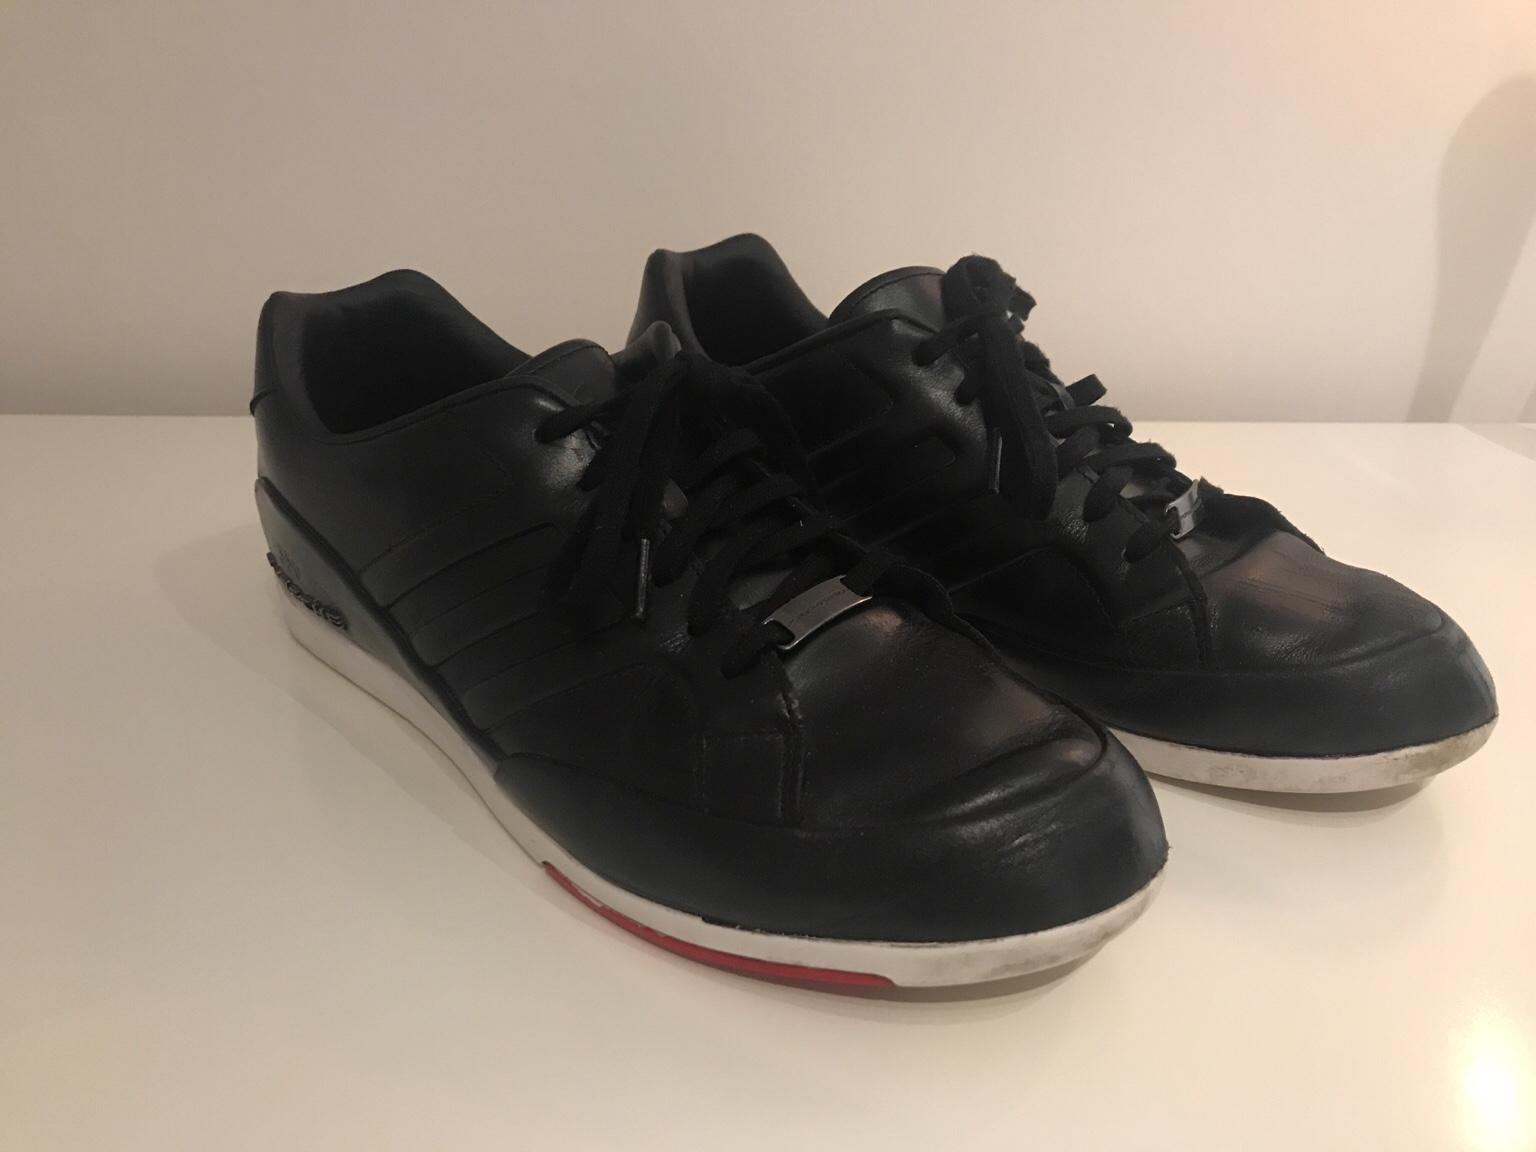 low priced 9a097 ffdb9 Adidas Porsche design shoes